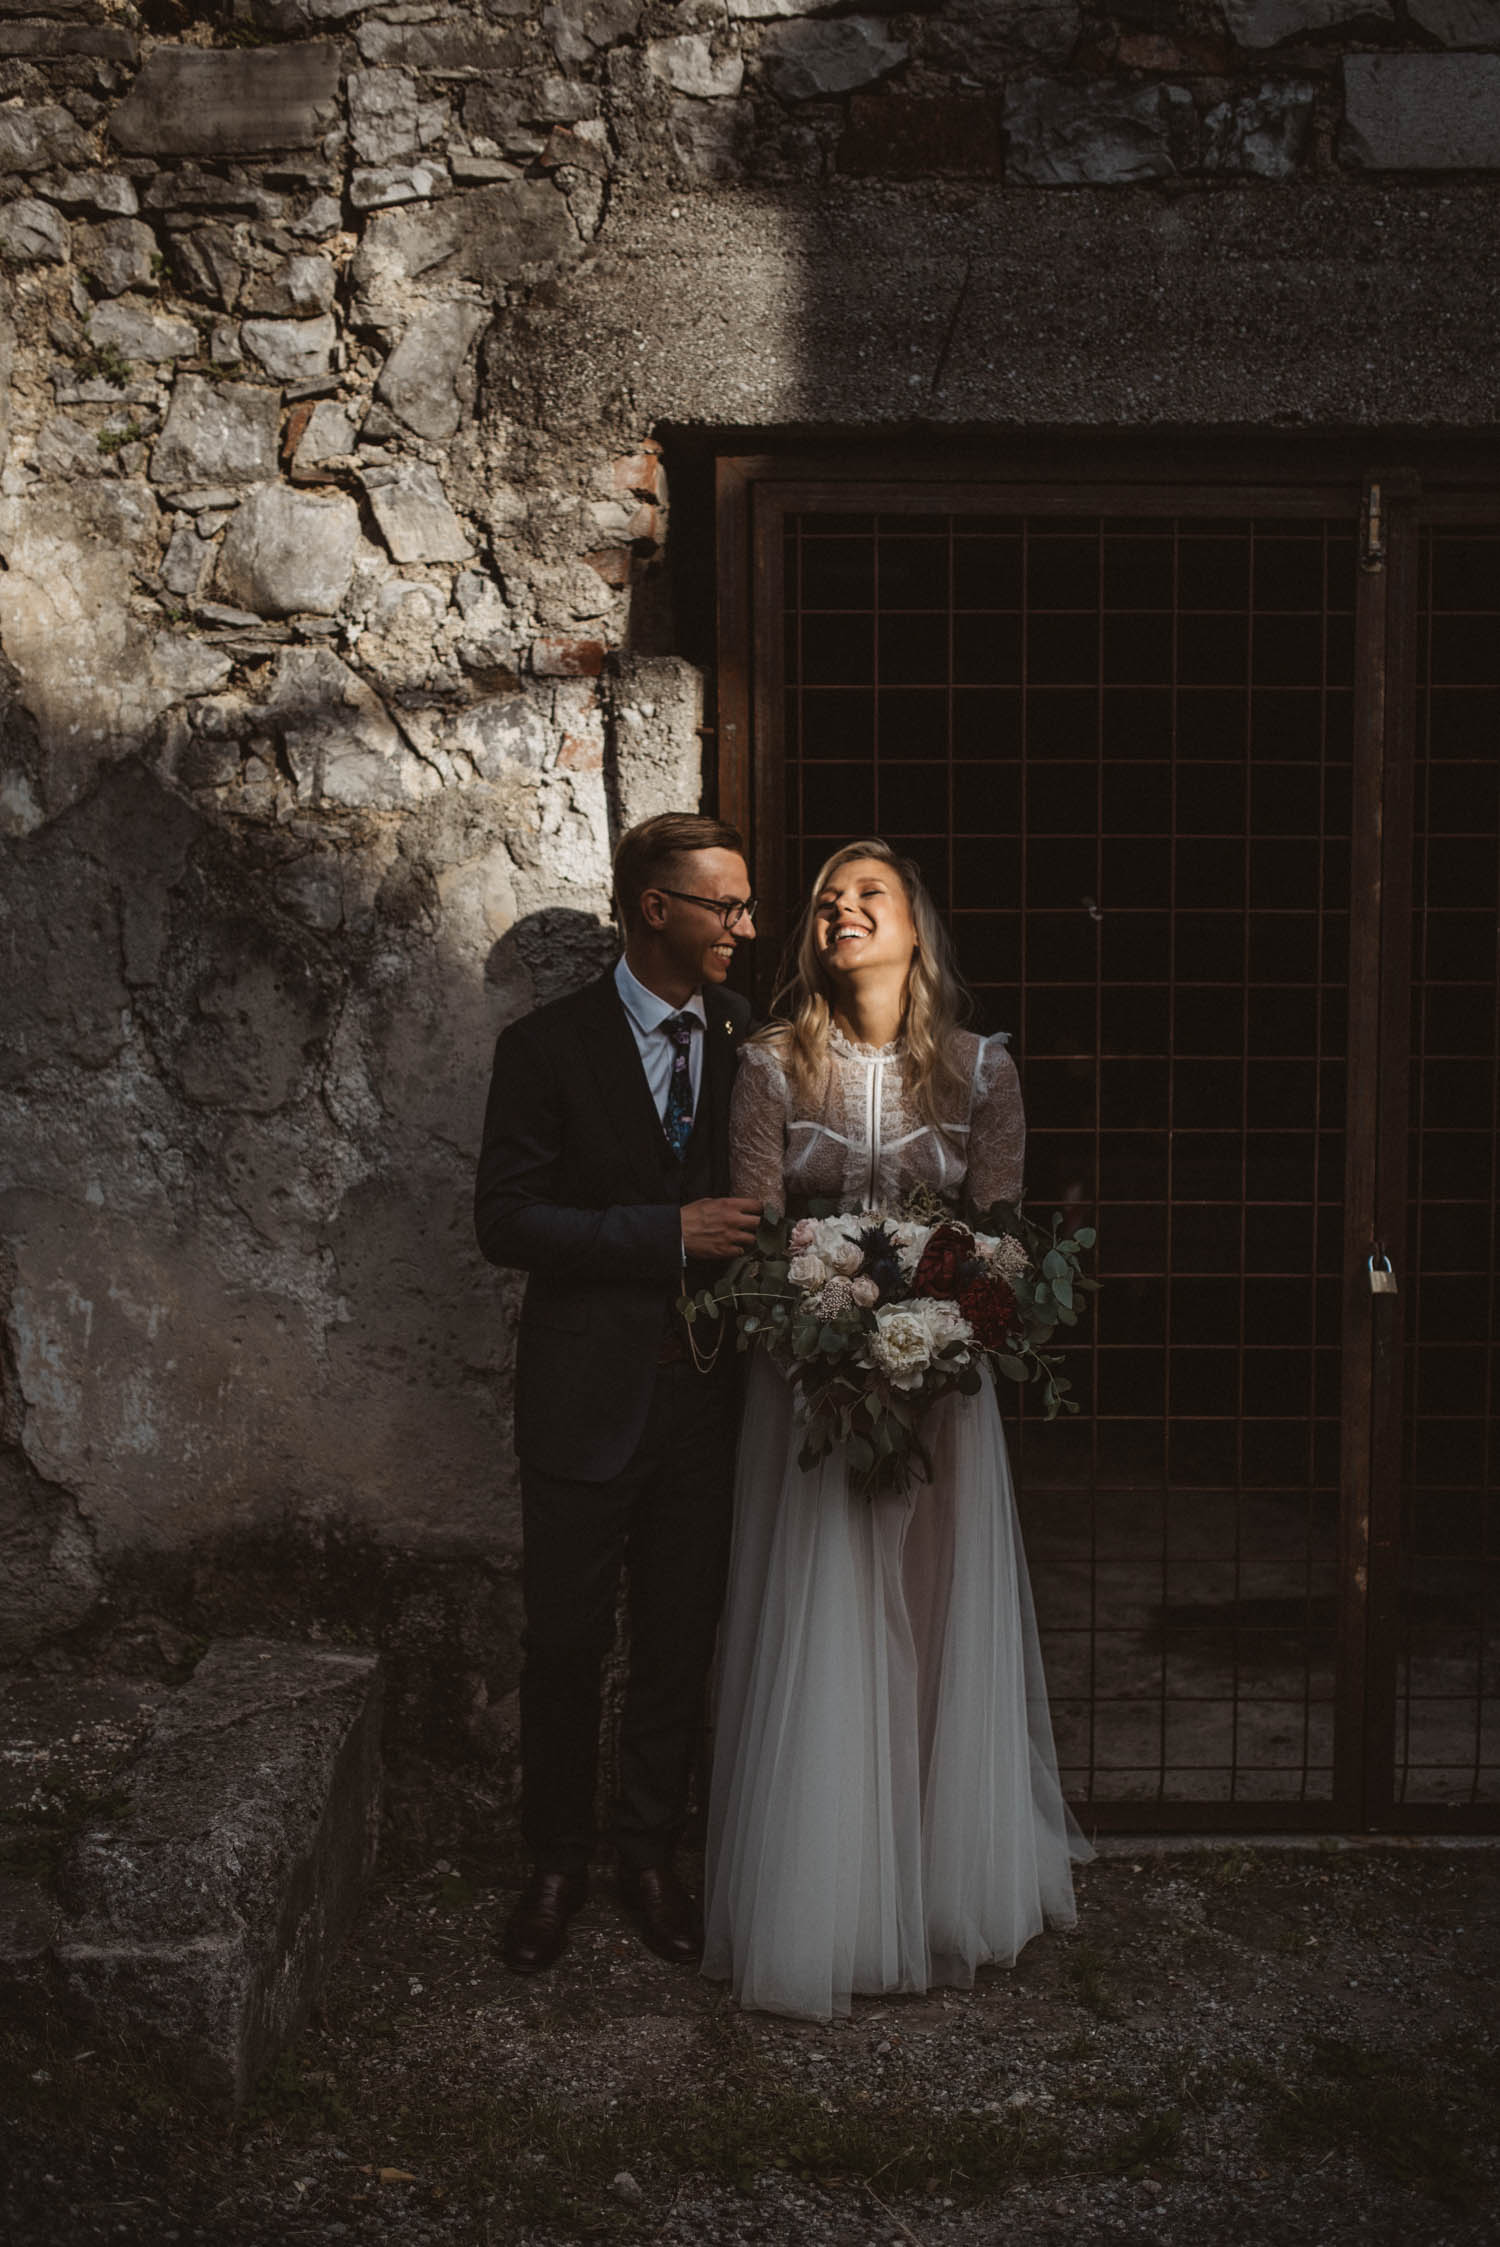 Stanjel Slovenia Wedding Photographer